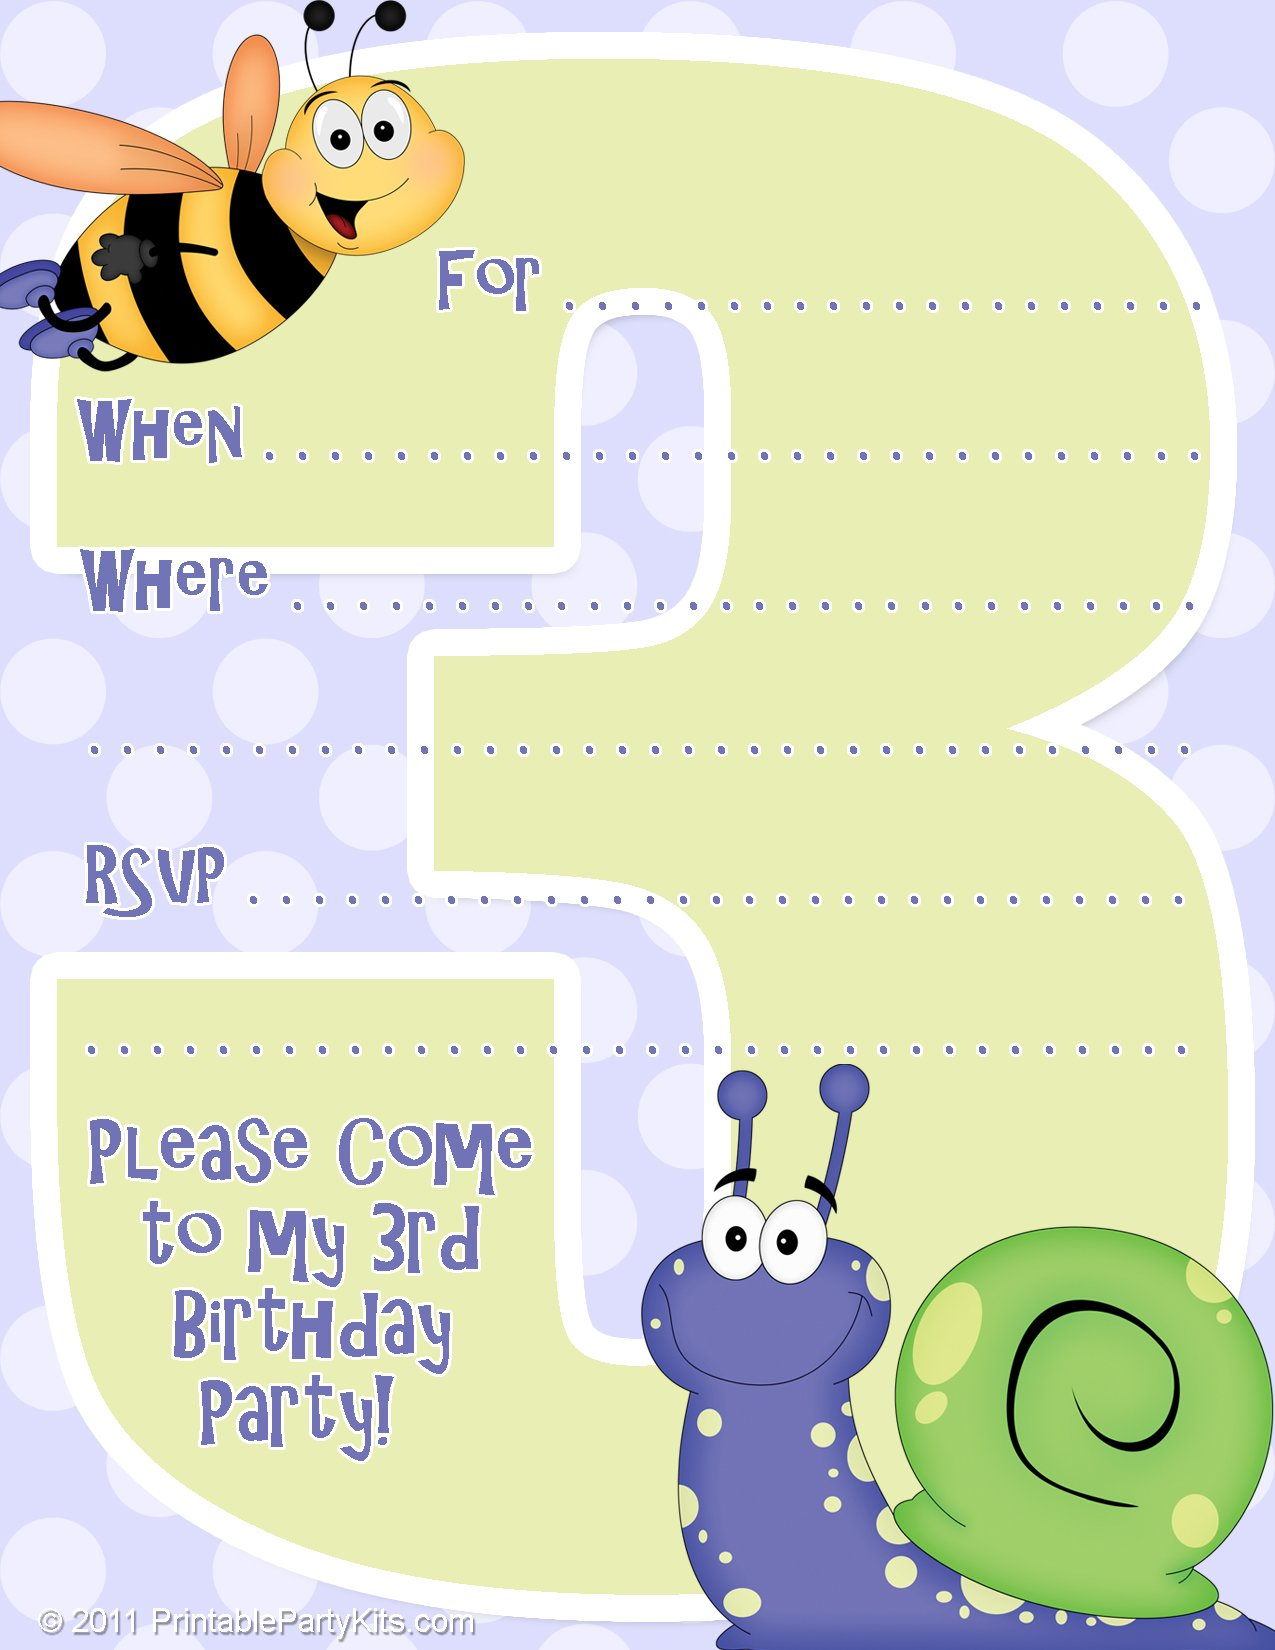 printable birthday party invitations drevio invitations design printable bee birthday party invitations